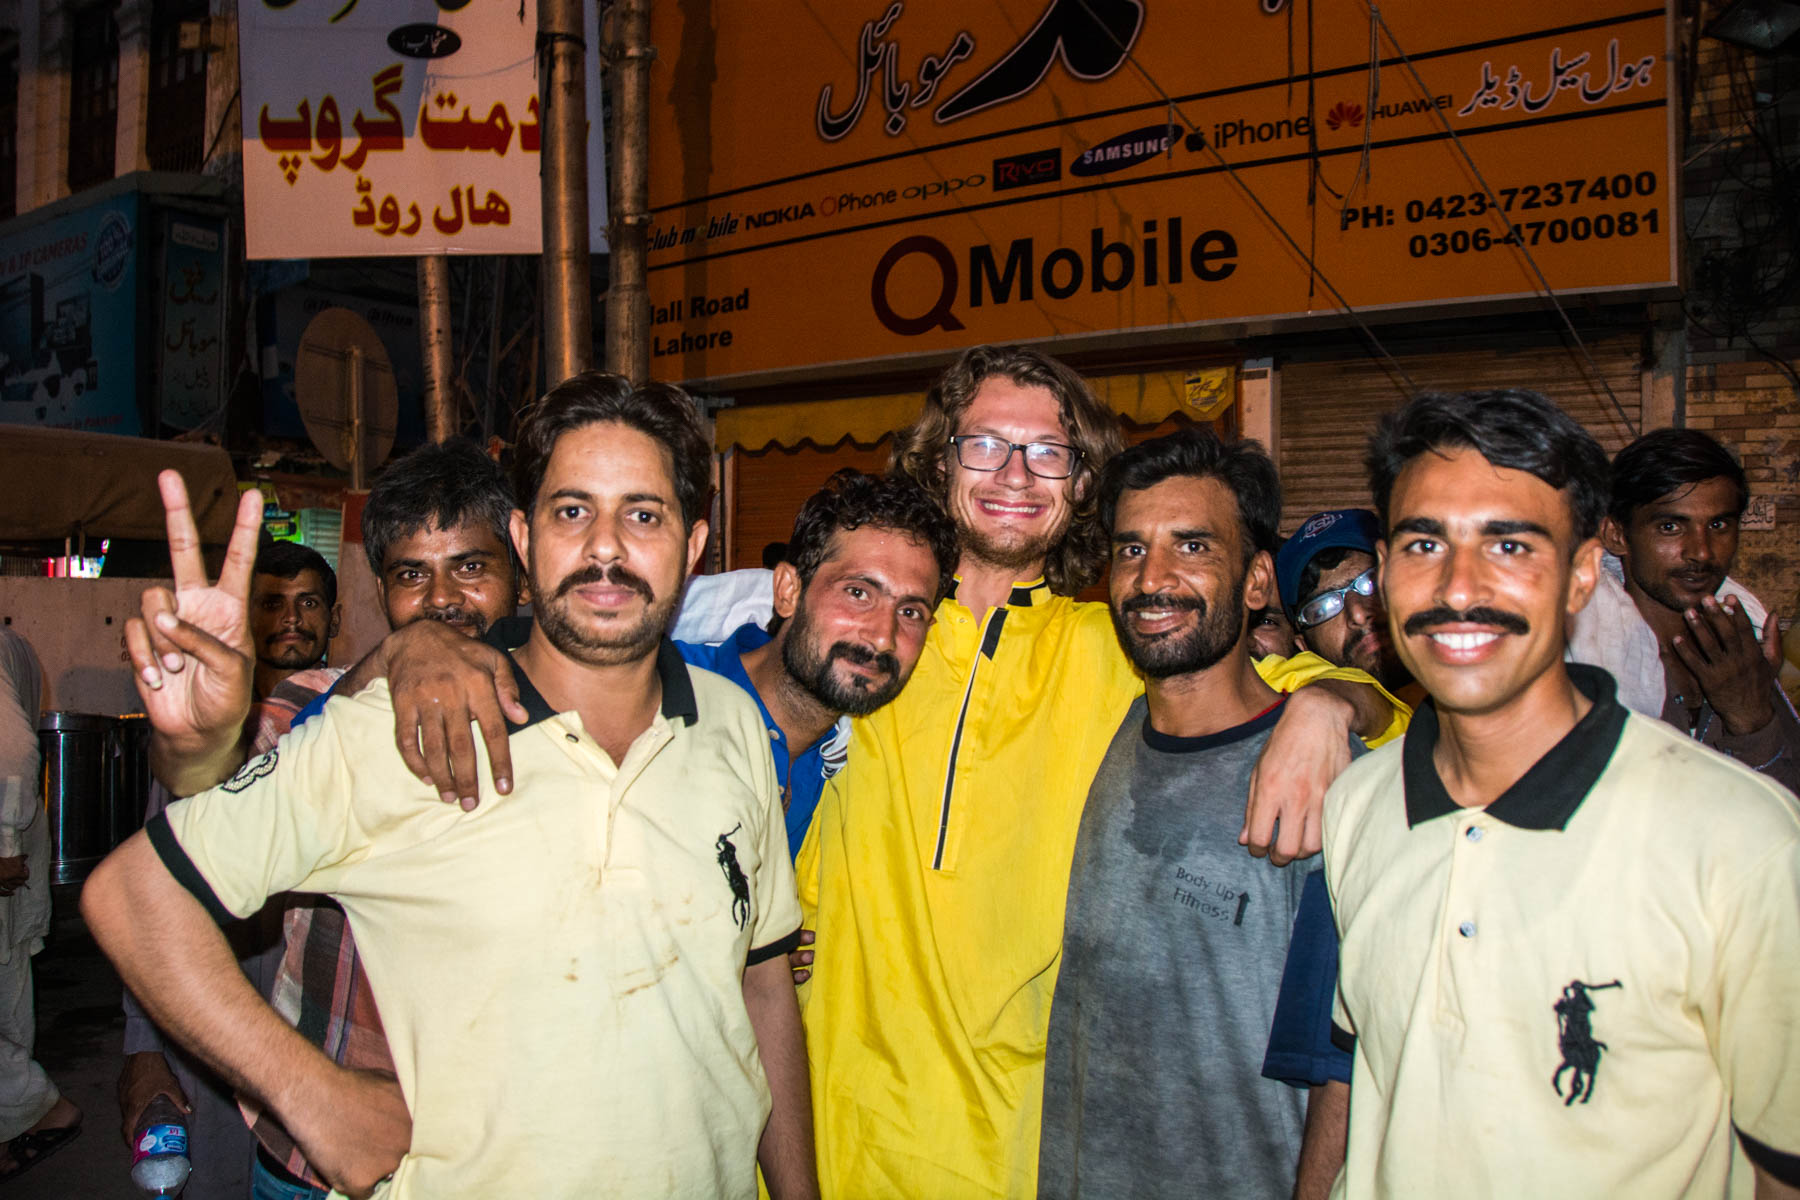 Tales of Pakistani hospitality: taking a million photos with people in Lahore